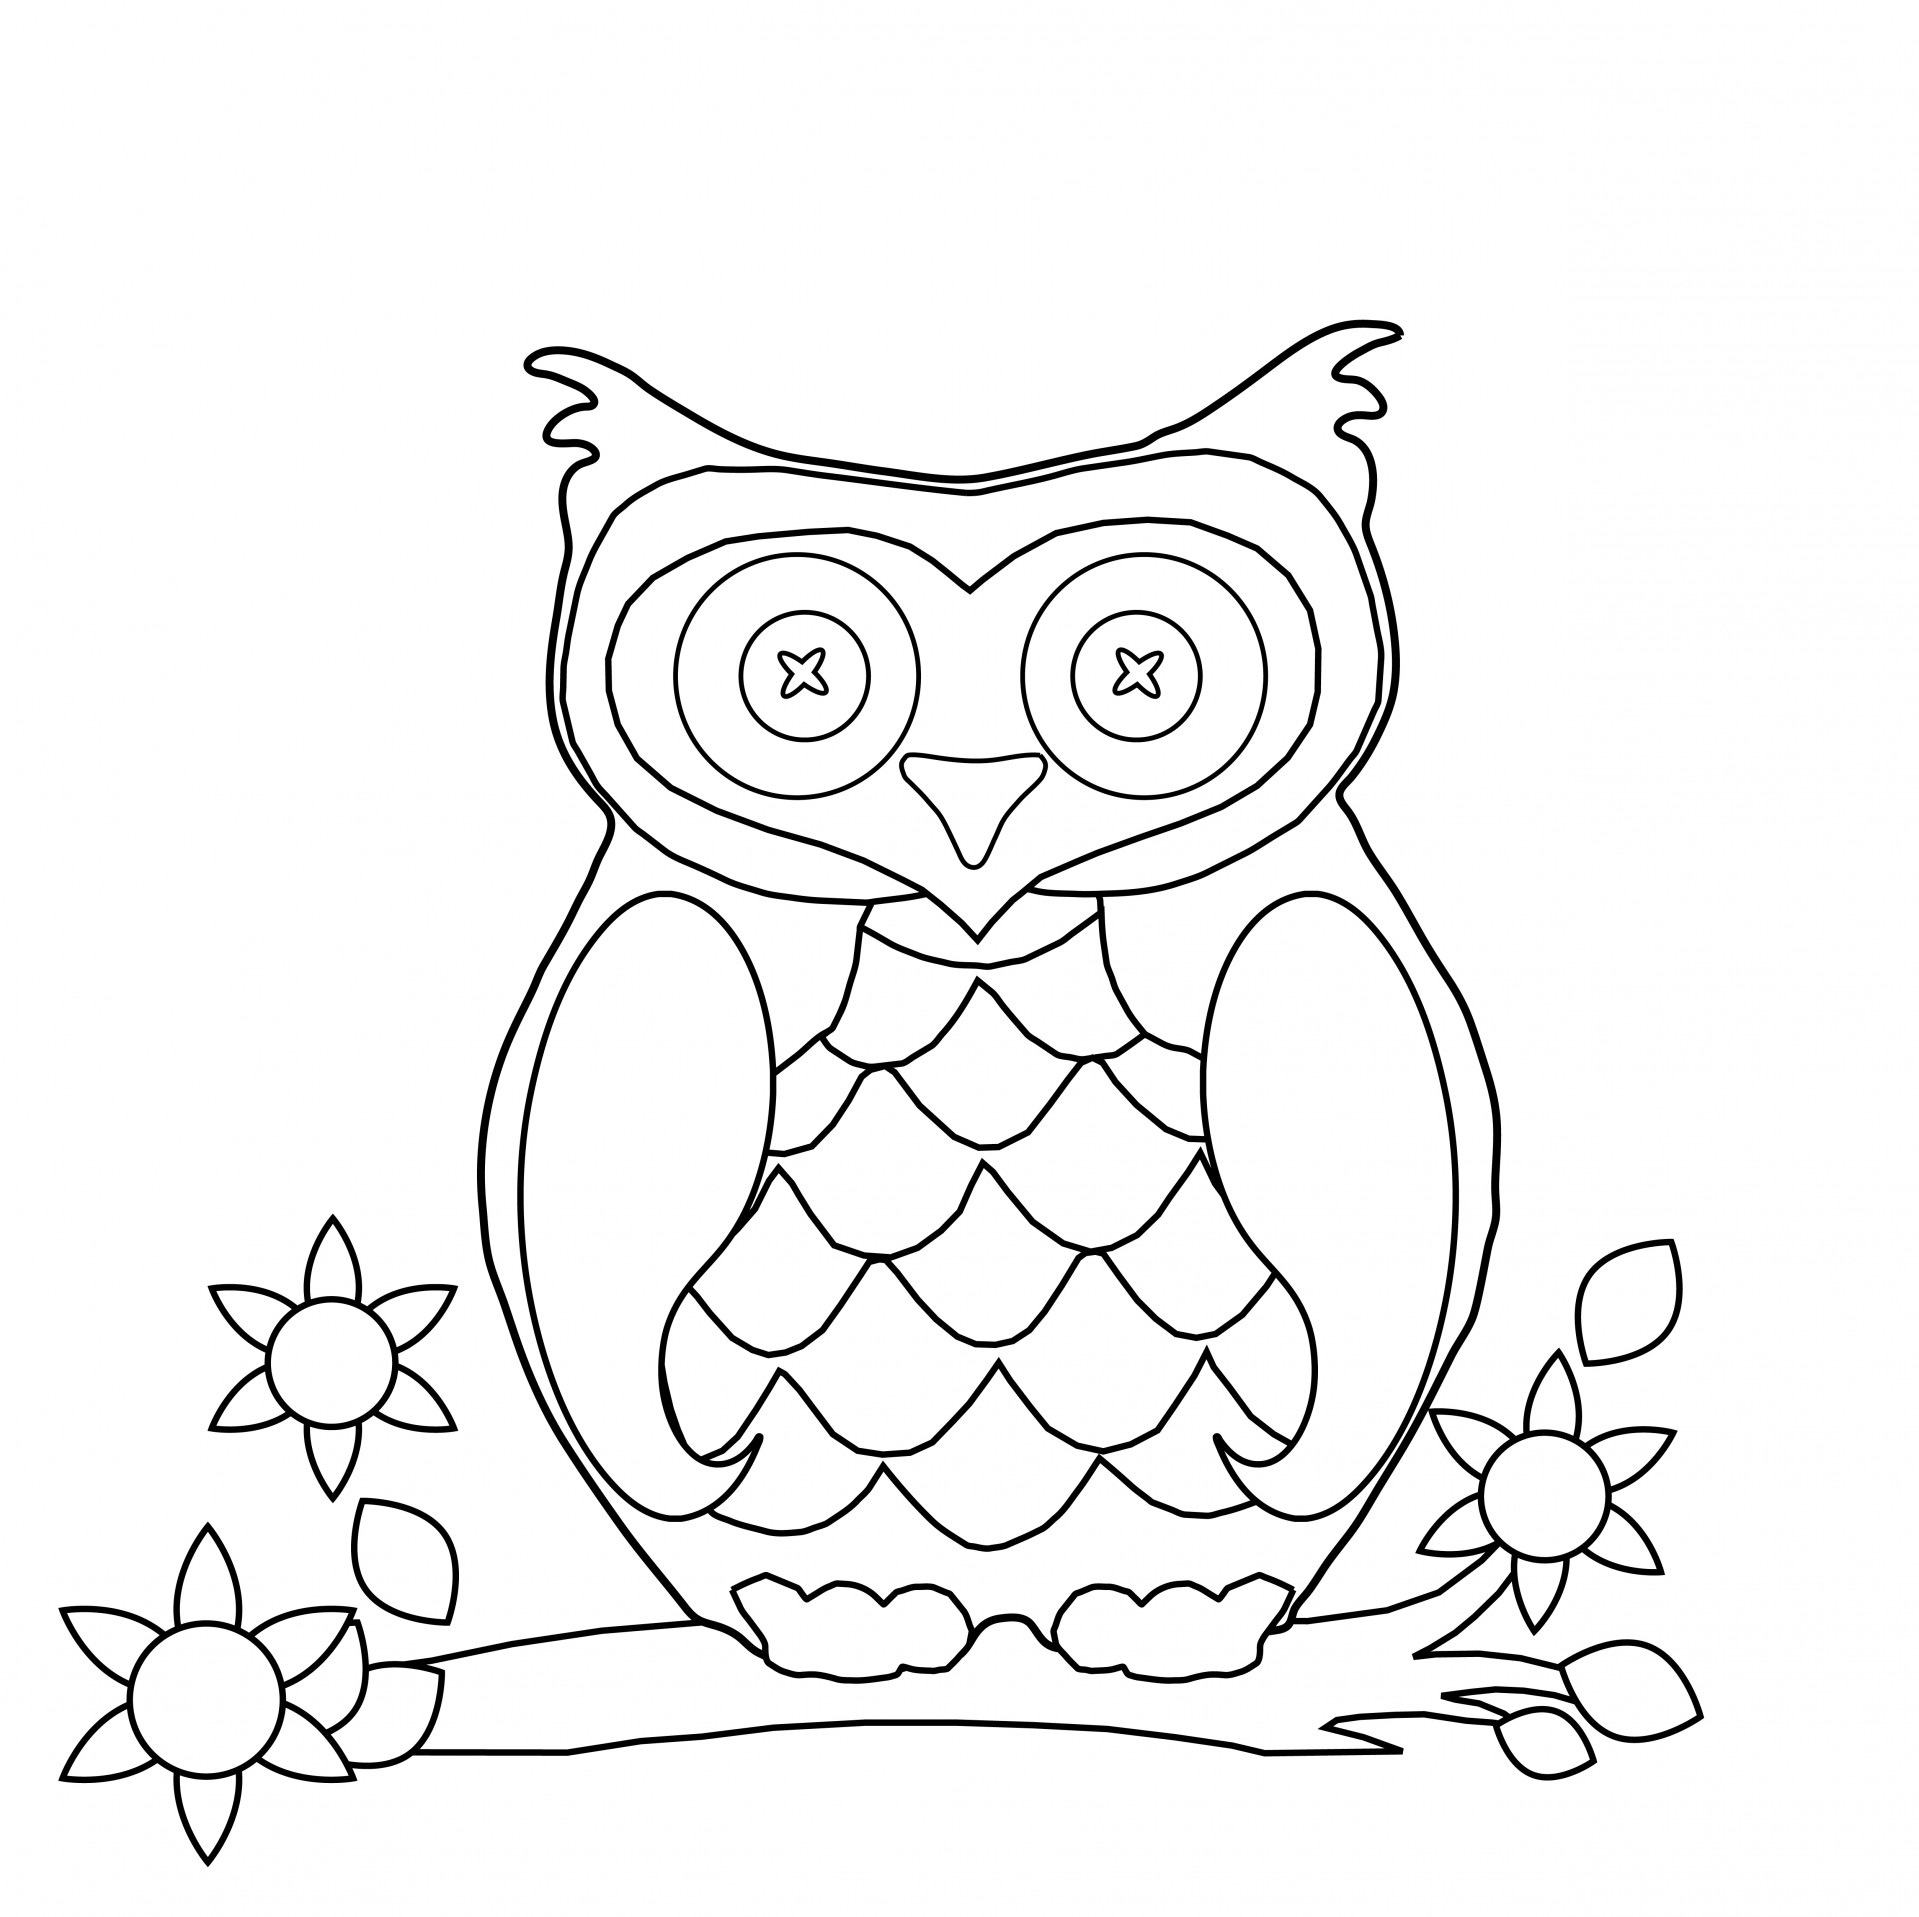 clip art coloring pictures Αποτέλεσμα εικόνας για traffic policeman clipart for coloring art clip pictures